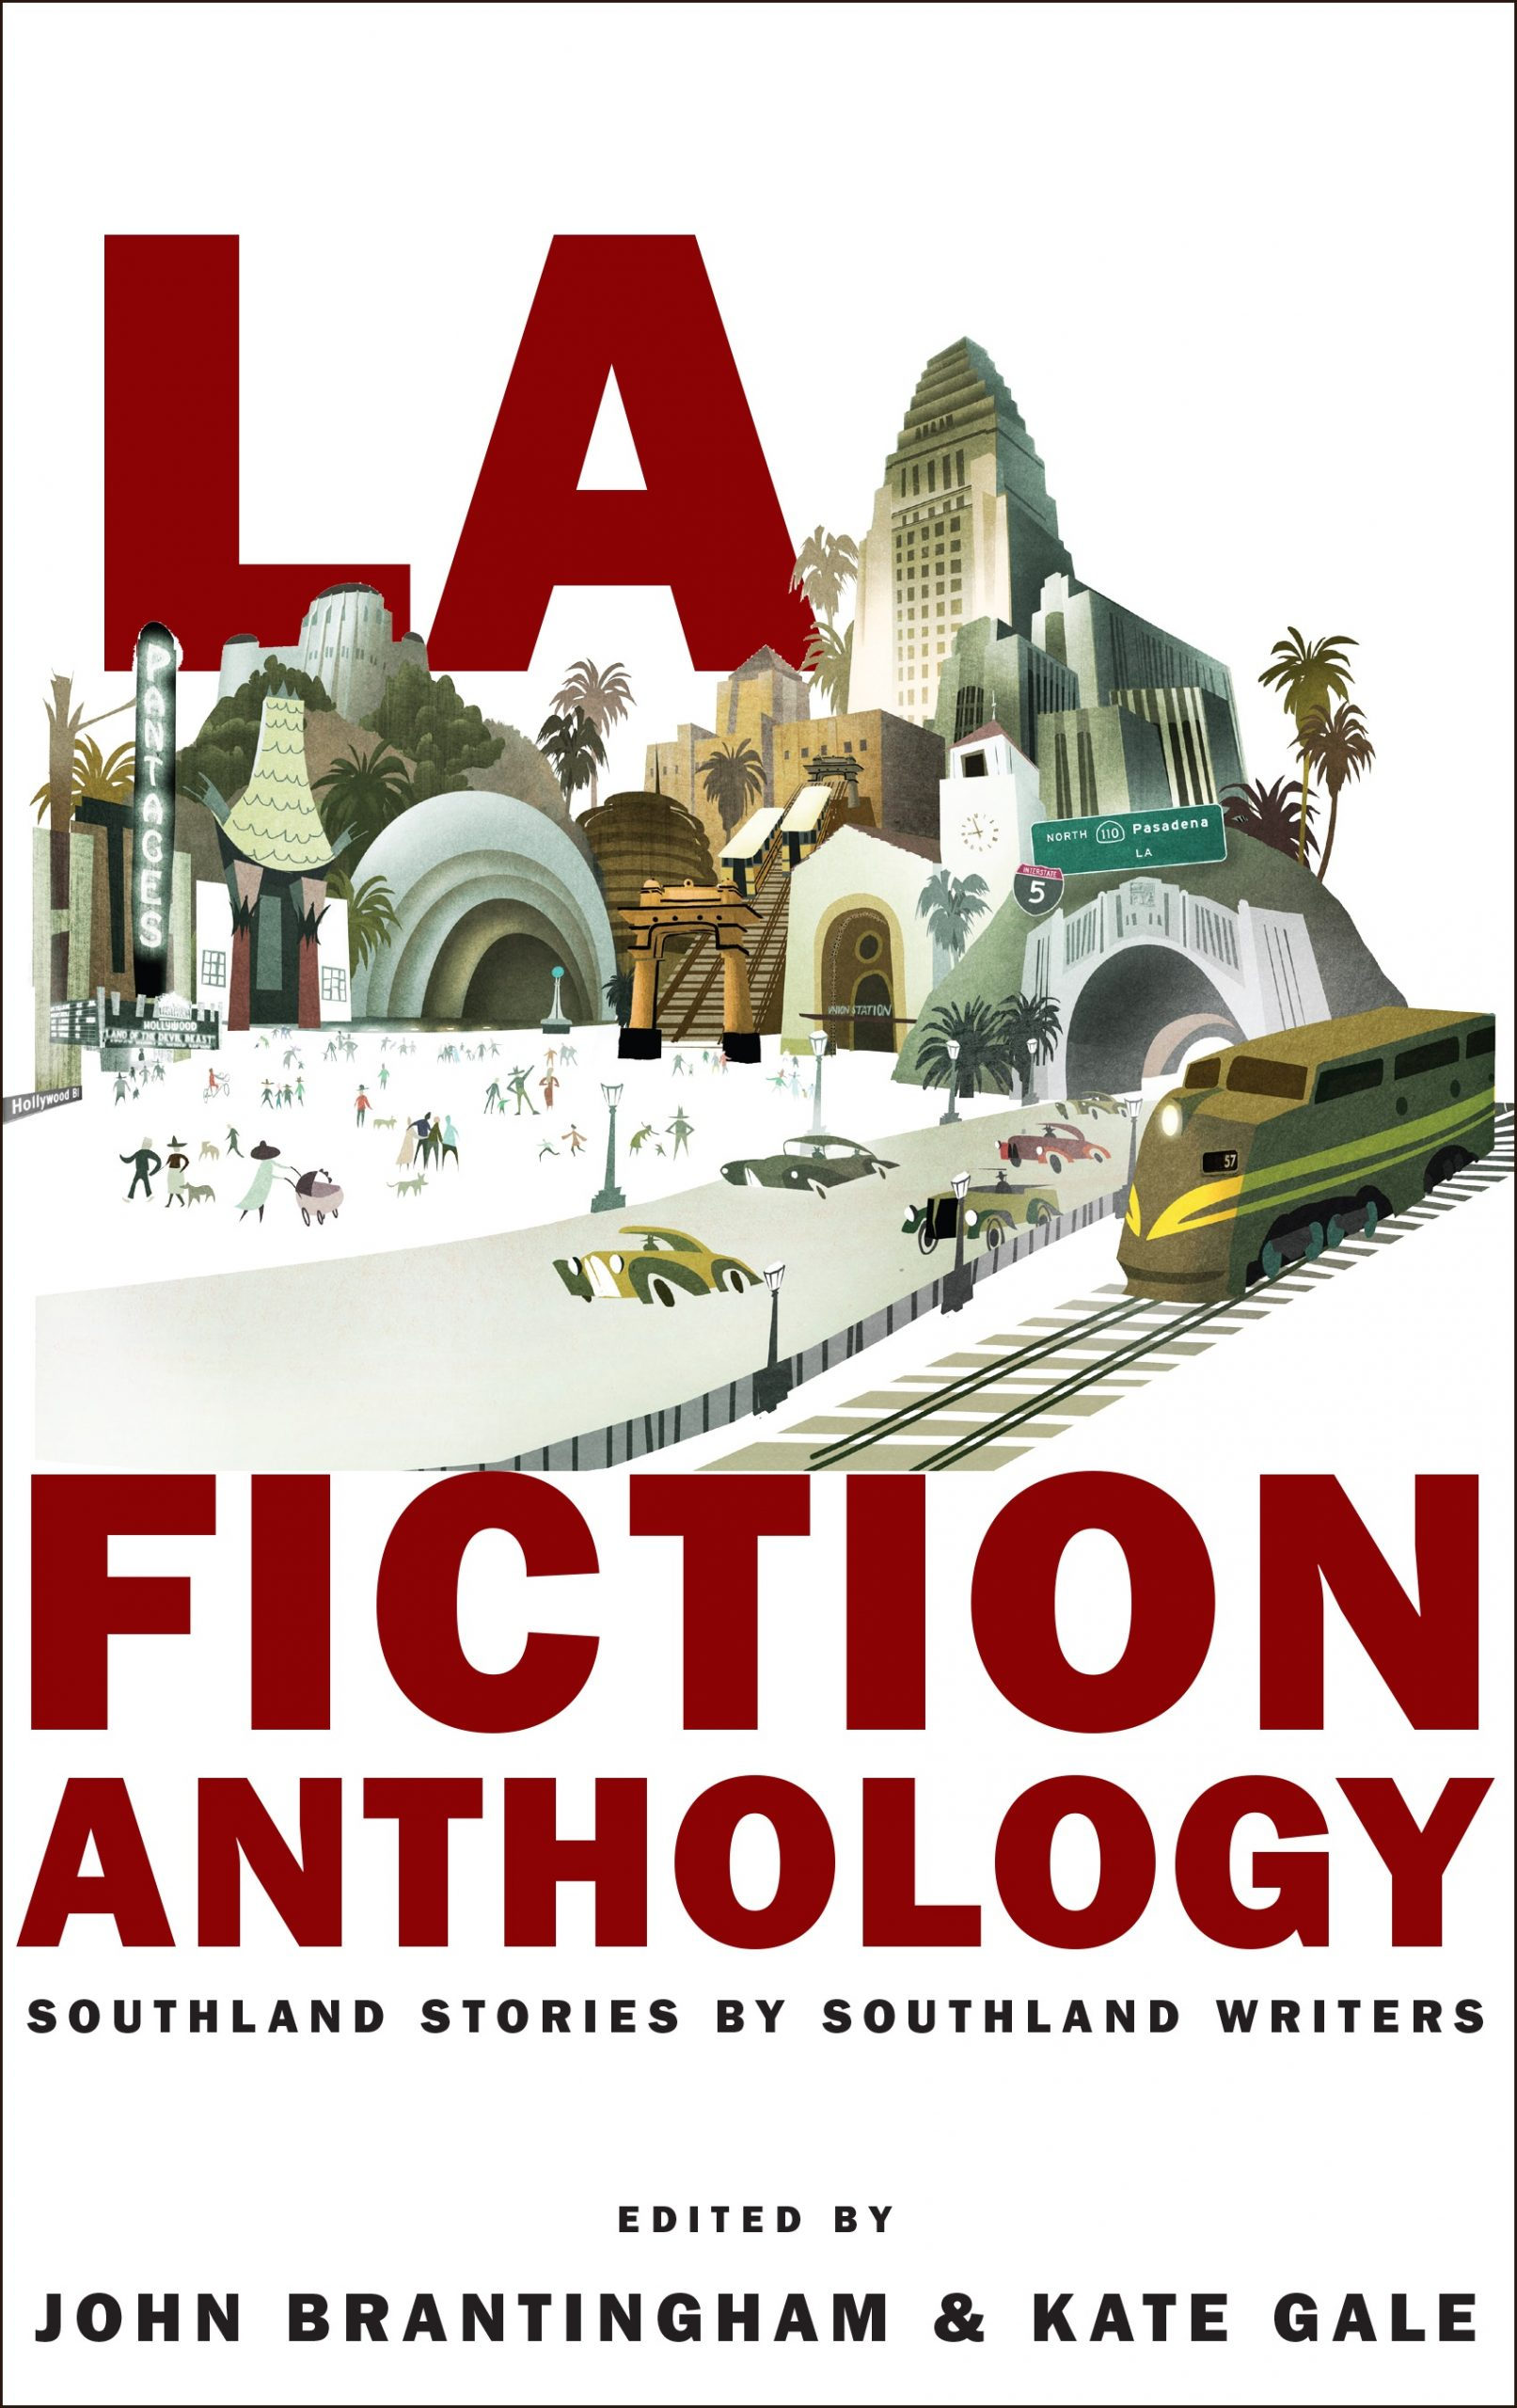 A white background with a graphic design of the city of Pasadena next to a a train station with red script that reads LA Fiction Anthology edited by John Brantingham & Kate Gale.